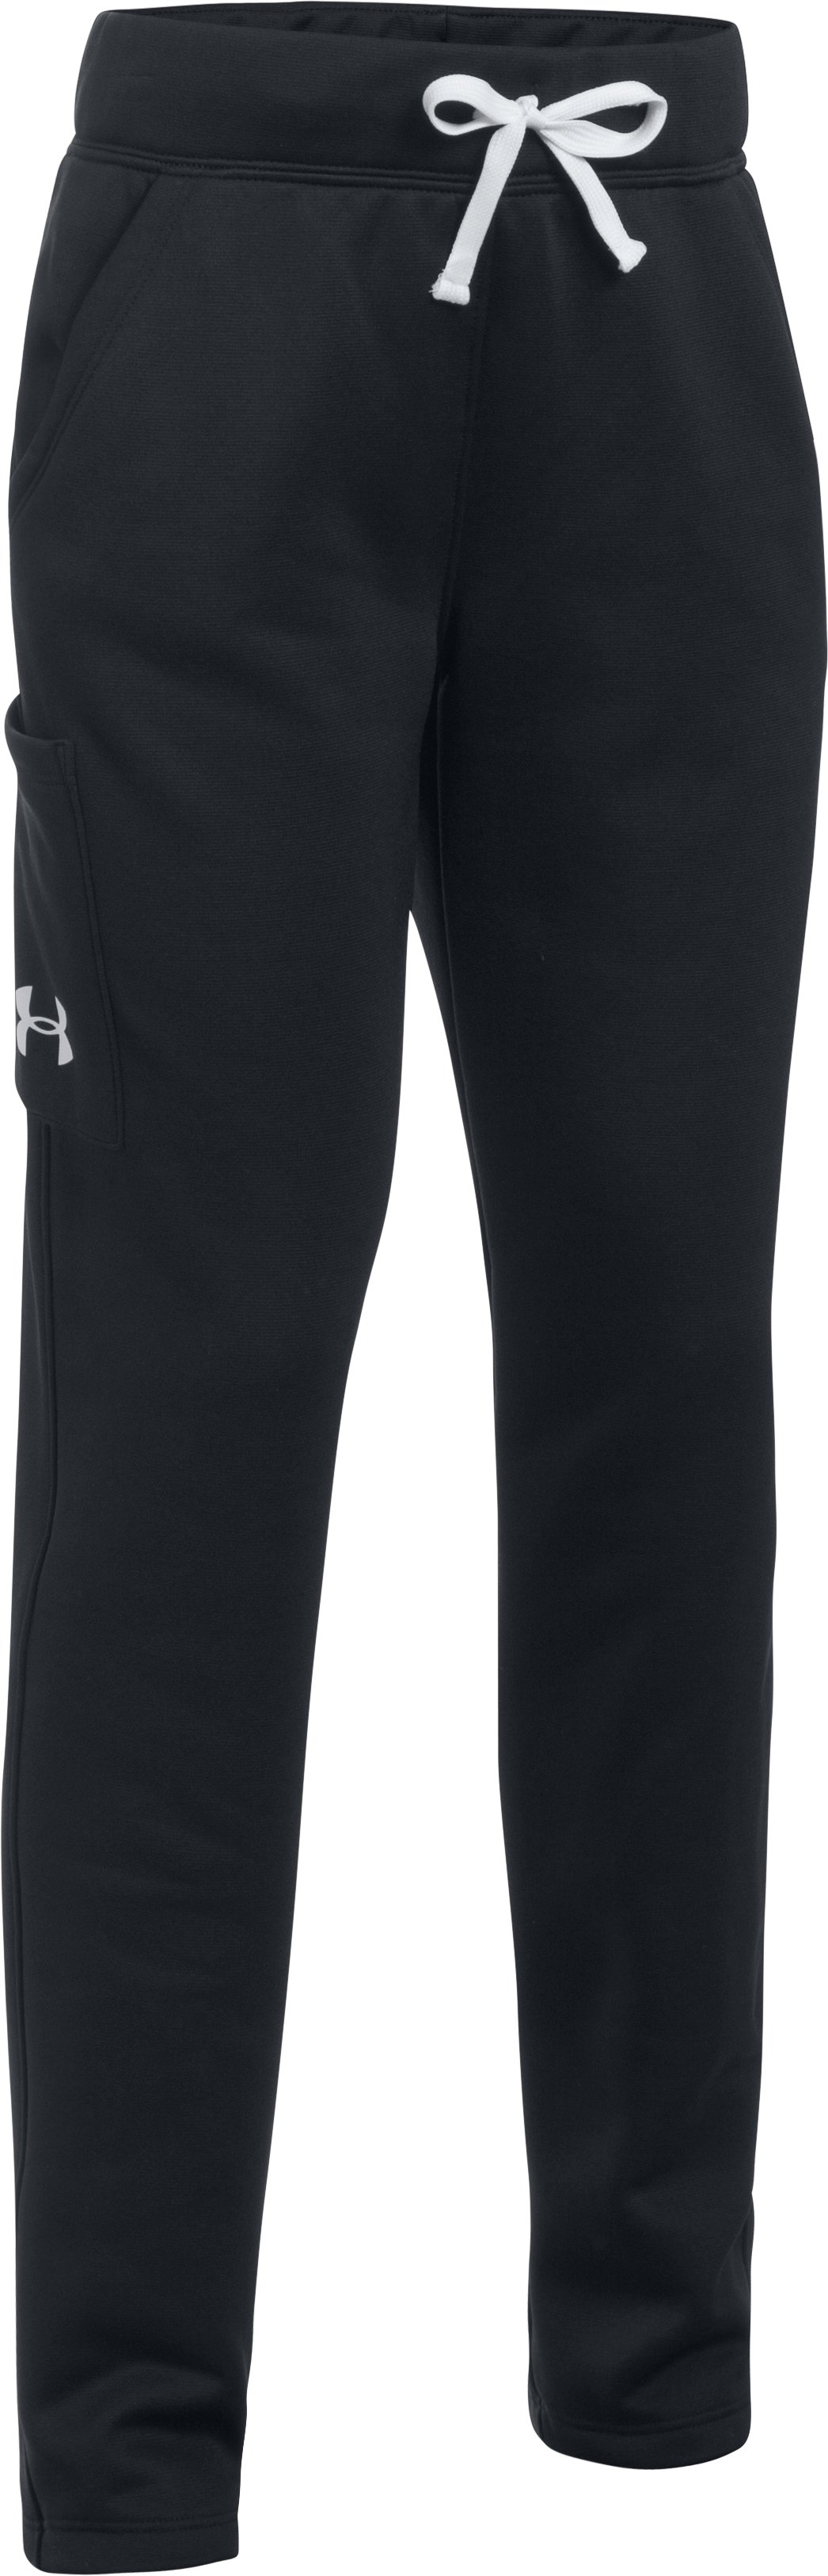 Girls' Armour Fleece® Pants 5 Colors $26.99